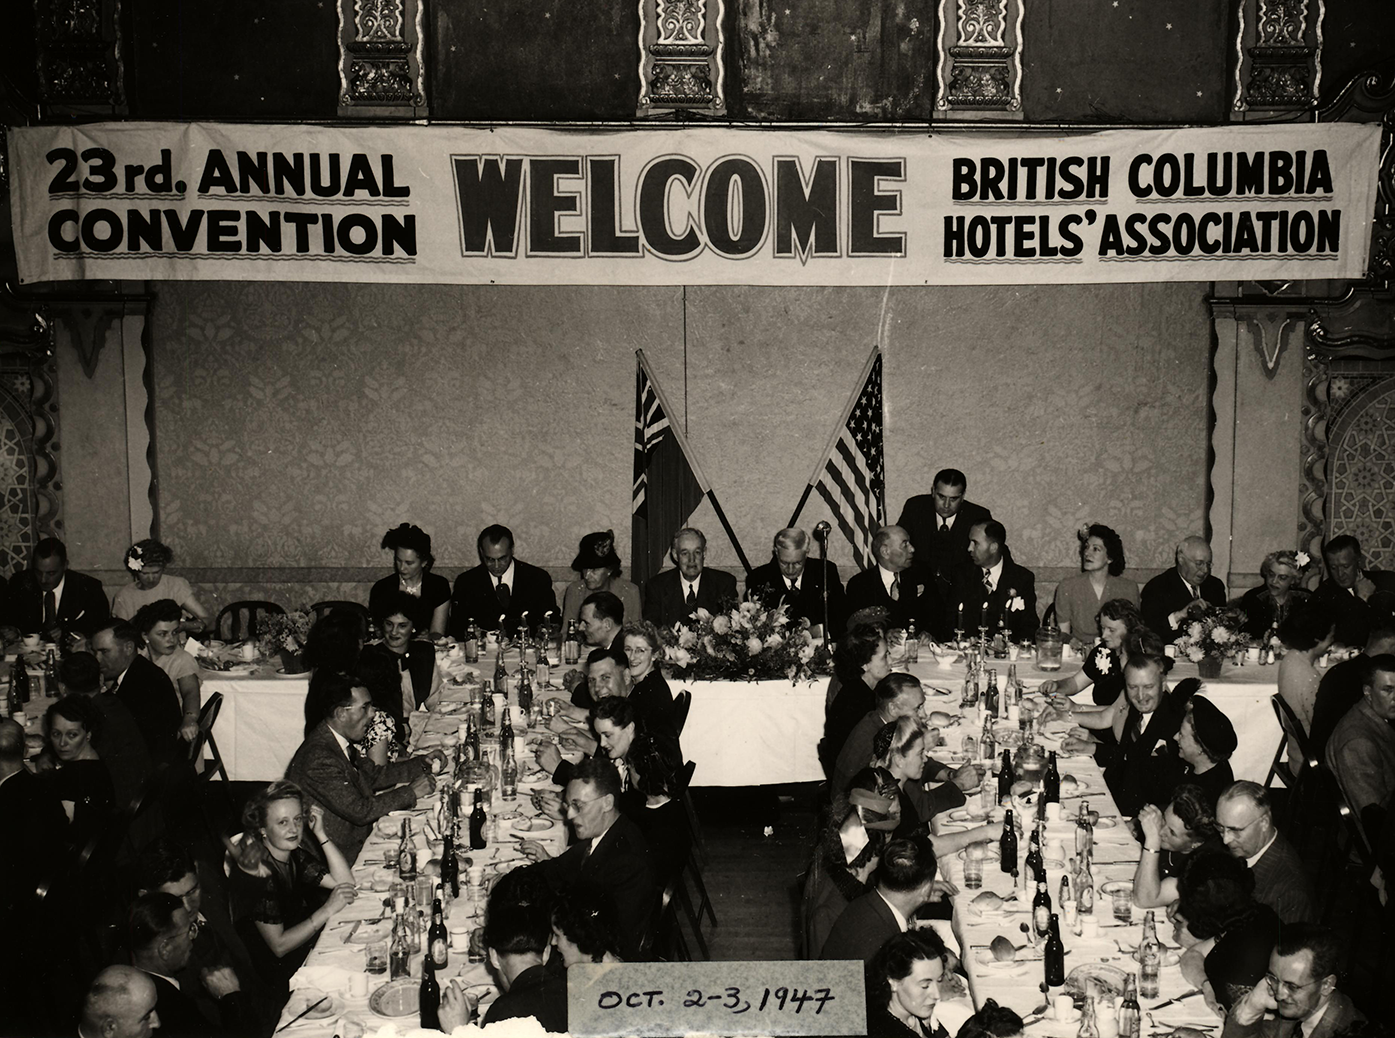 BCHA 23rd Annual Convention, 1947